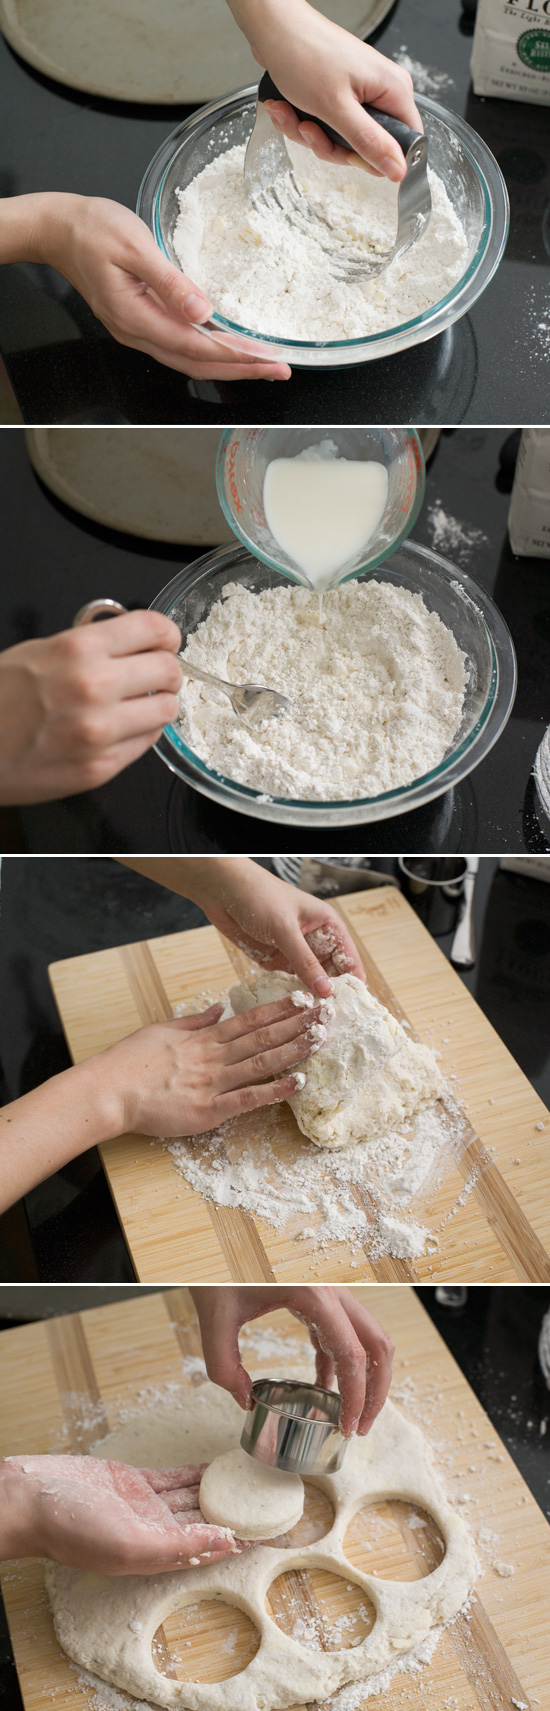 How to Make Fluffy and Flaky Buttermilk Biscuits